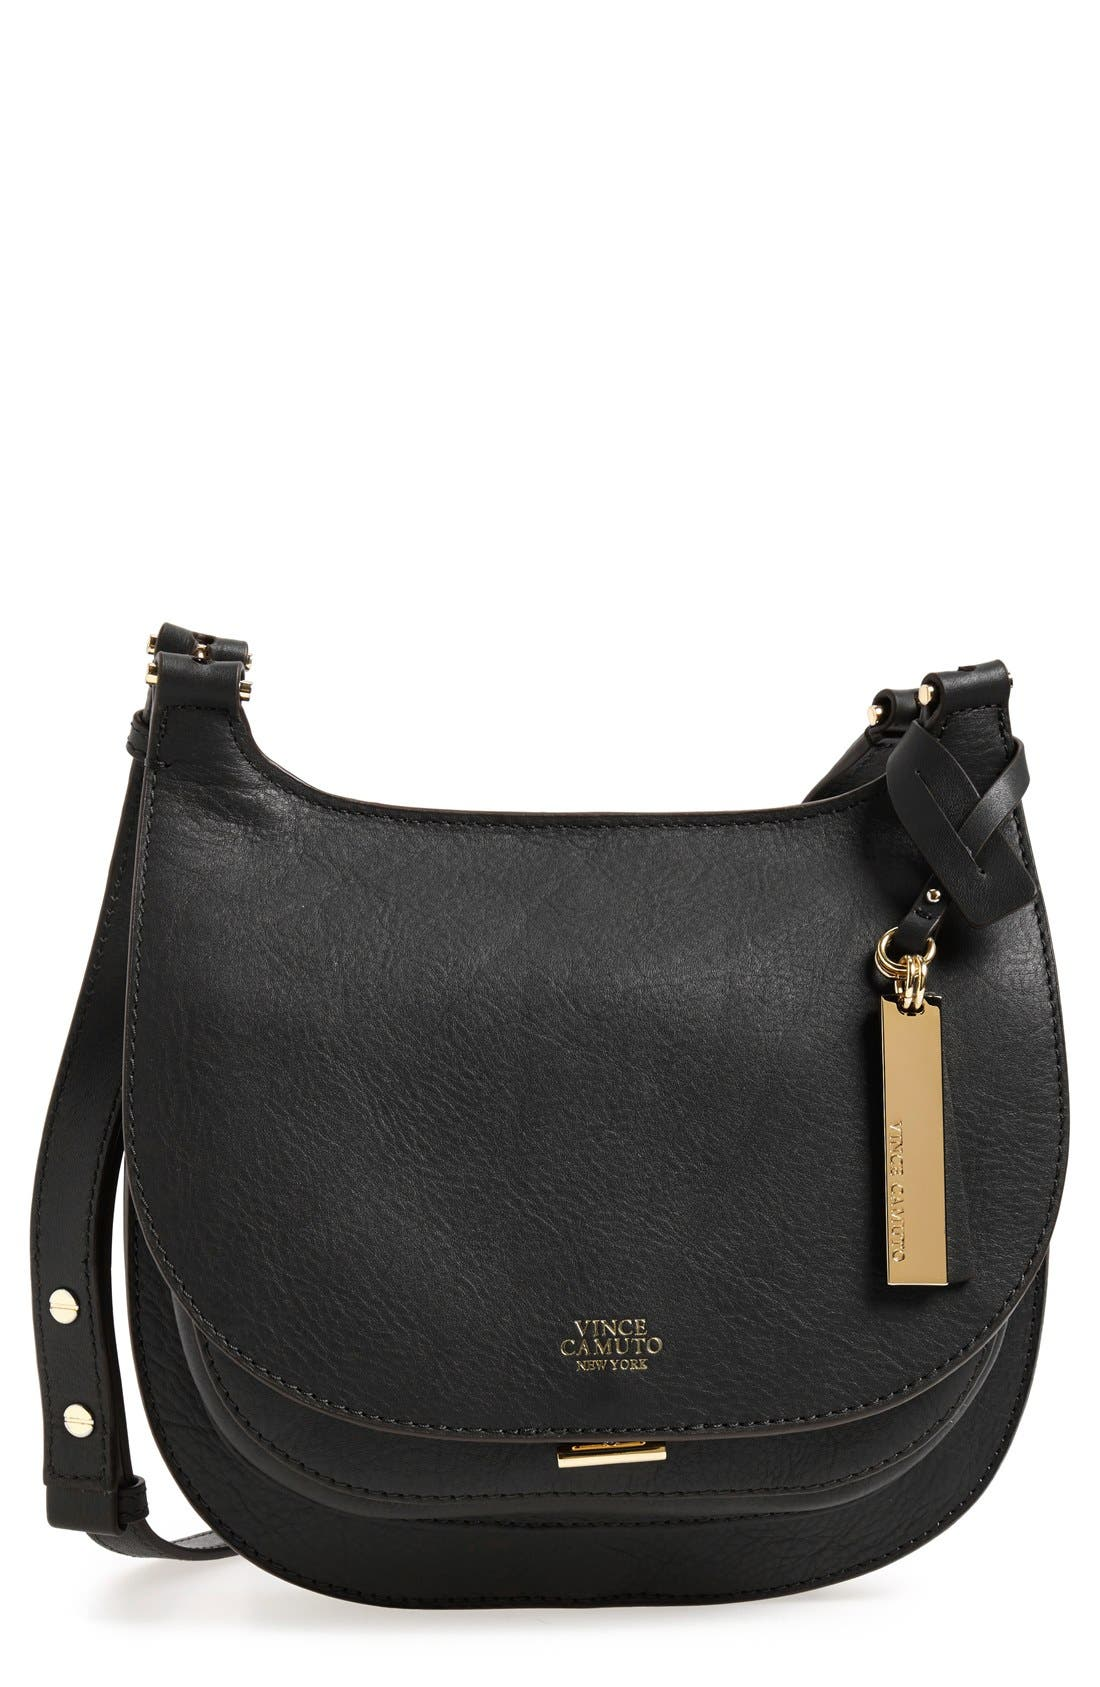 Alternate Image 1 Selected - Vince Camuto 'Small Elyza' Crossbody Bag